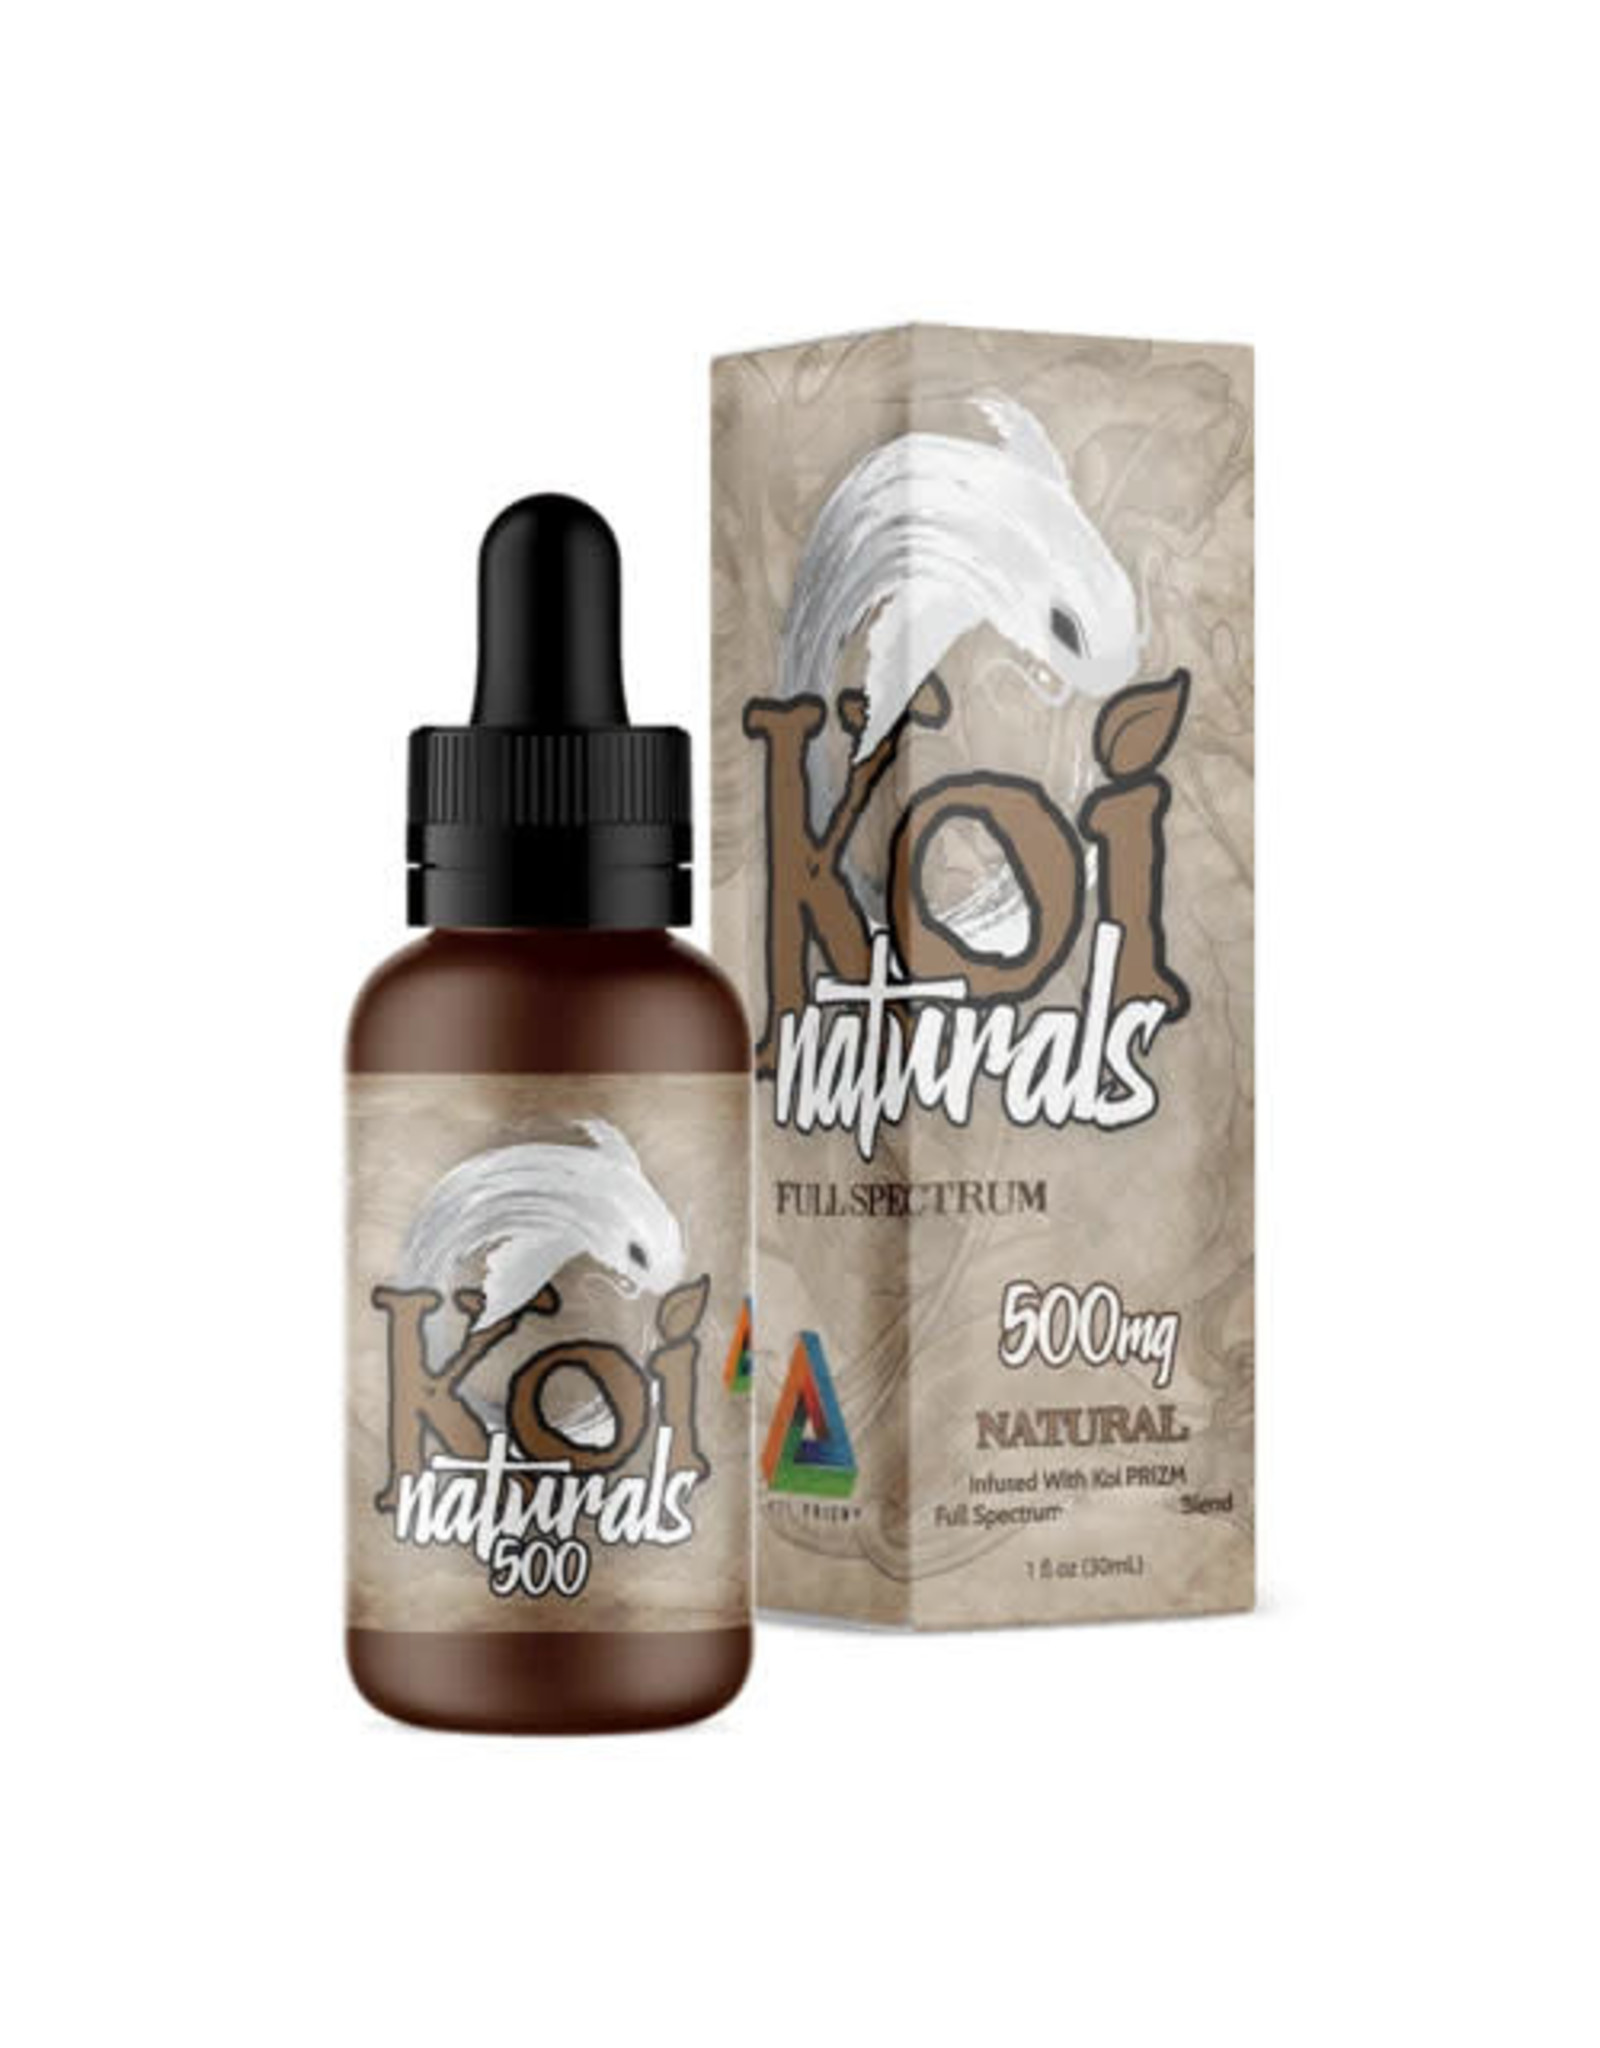 Koi Koi Natural Tincture 500mg 1oz